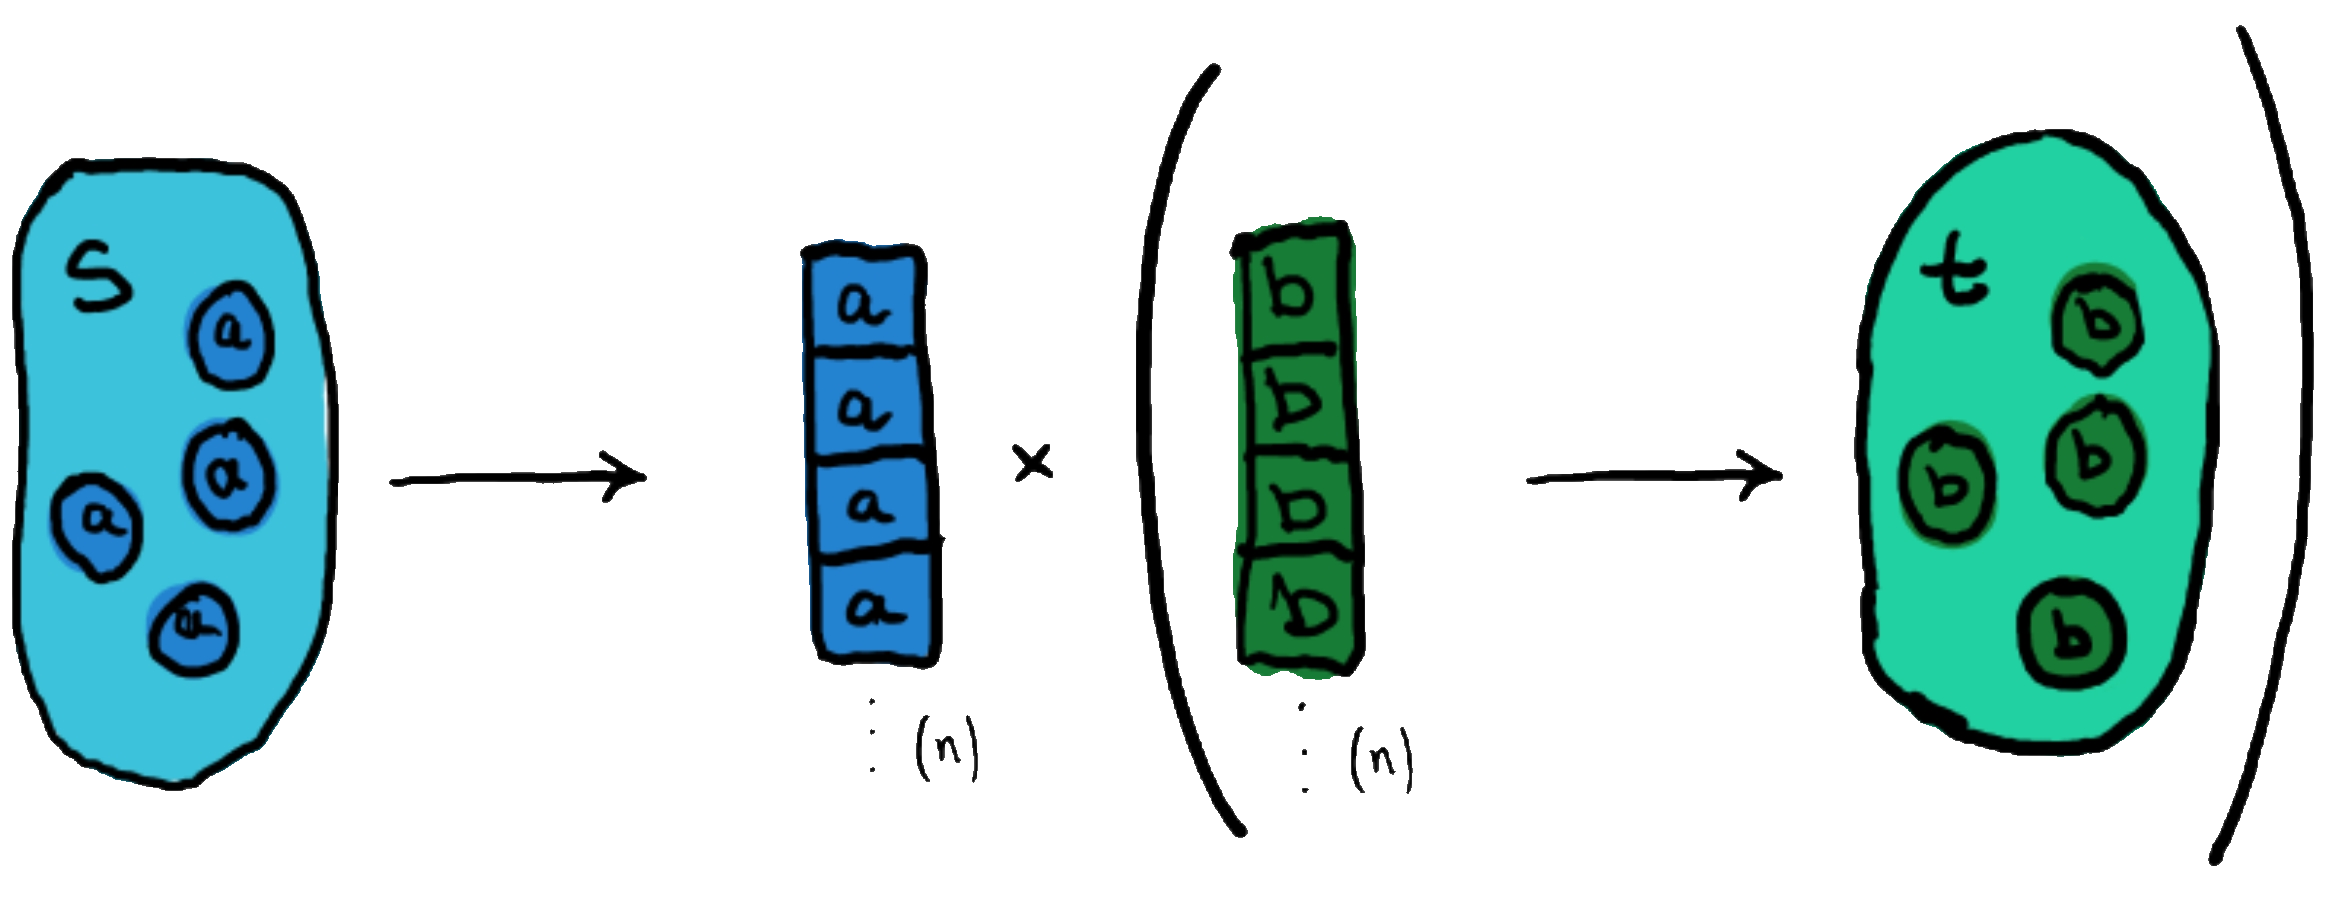 A traversal, consisting on an extract function.